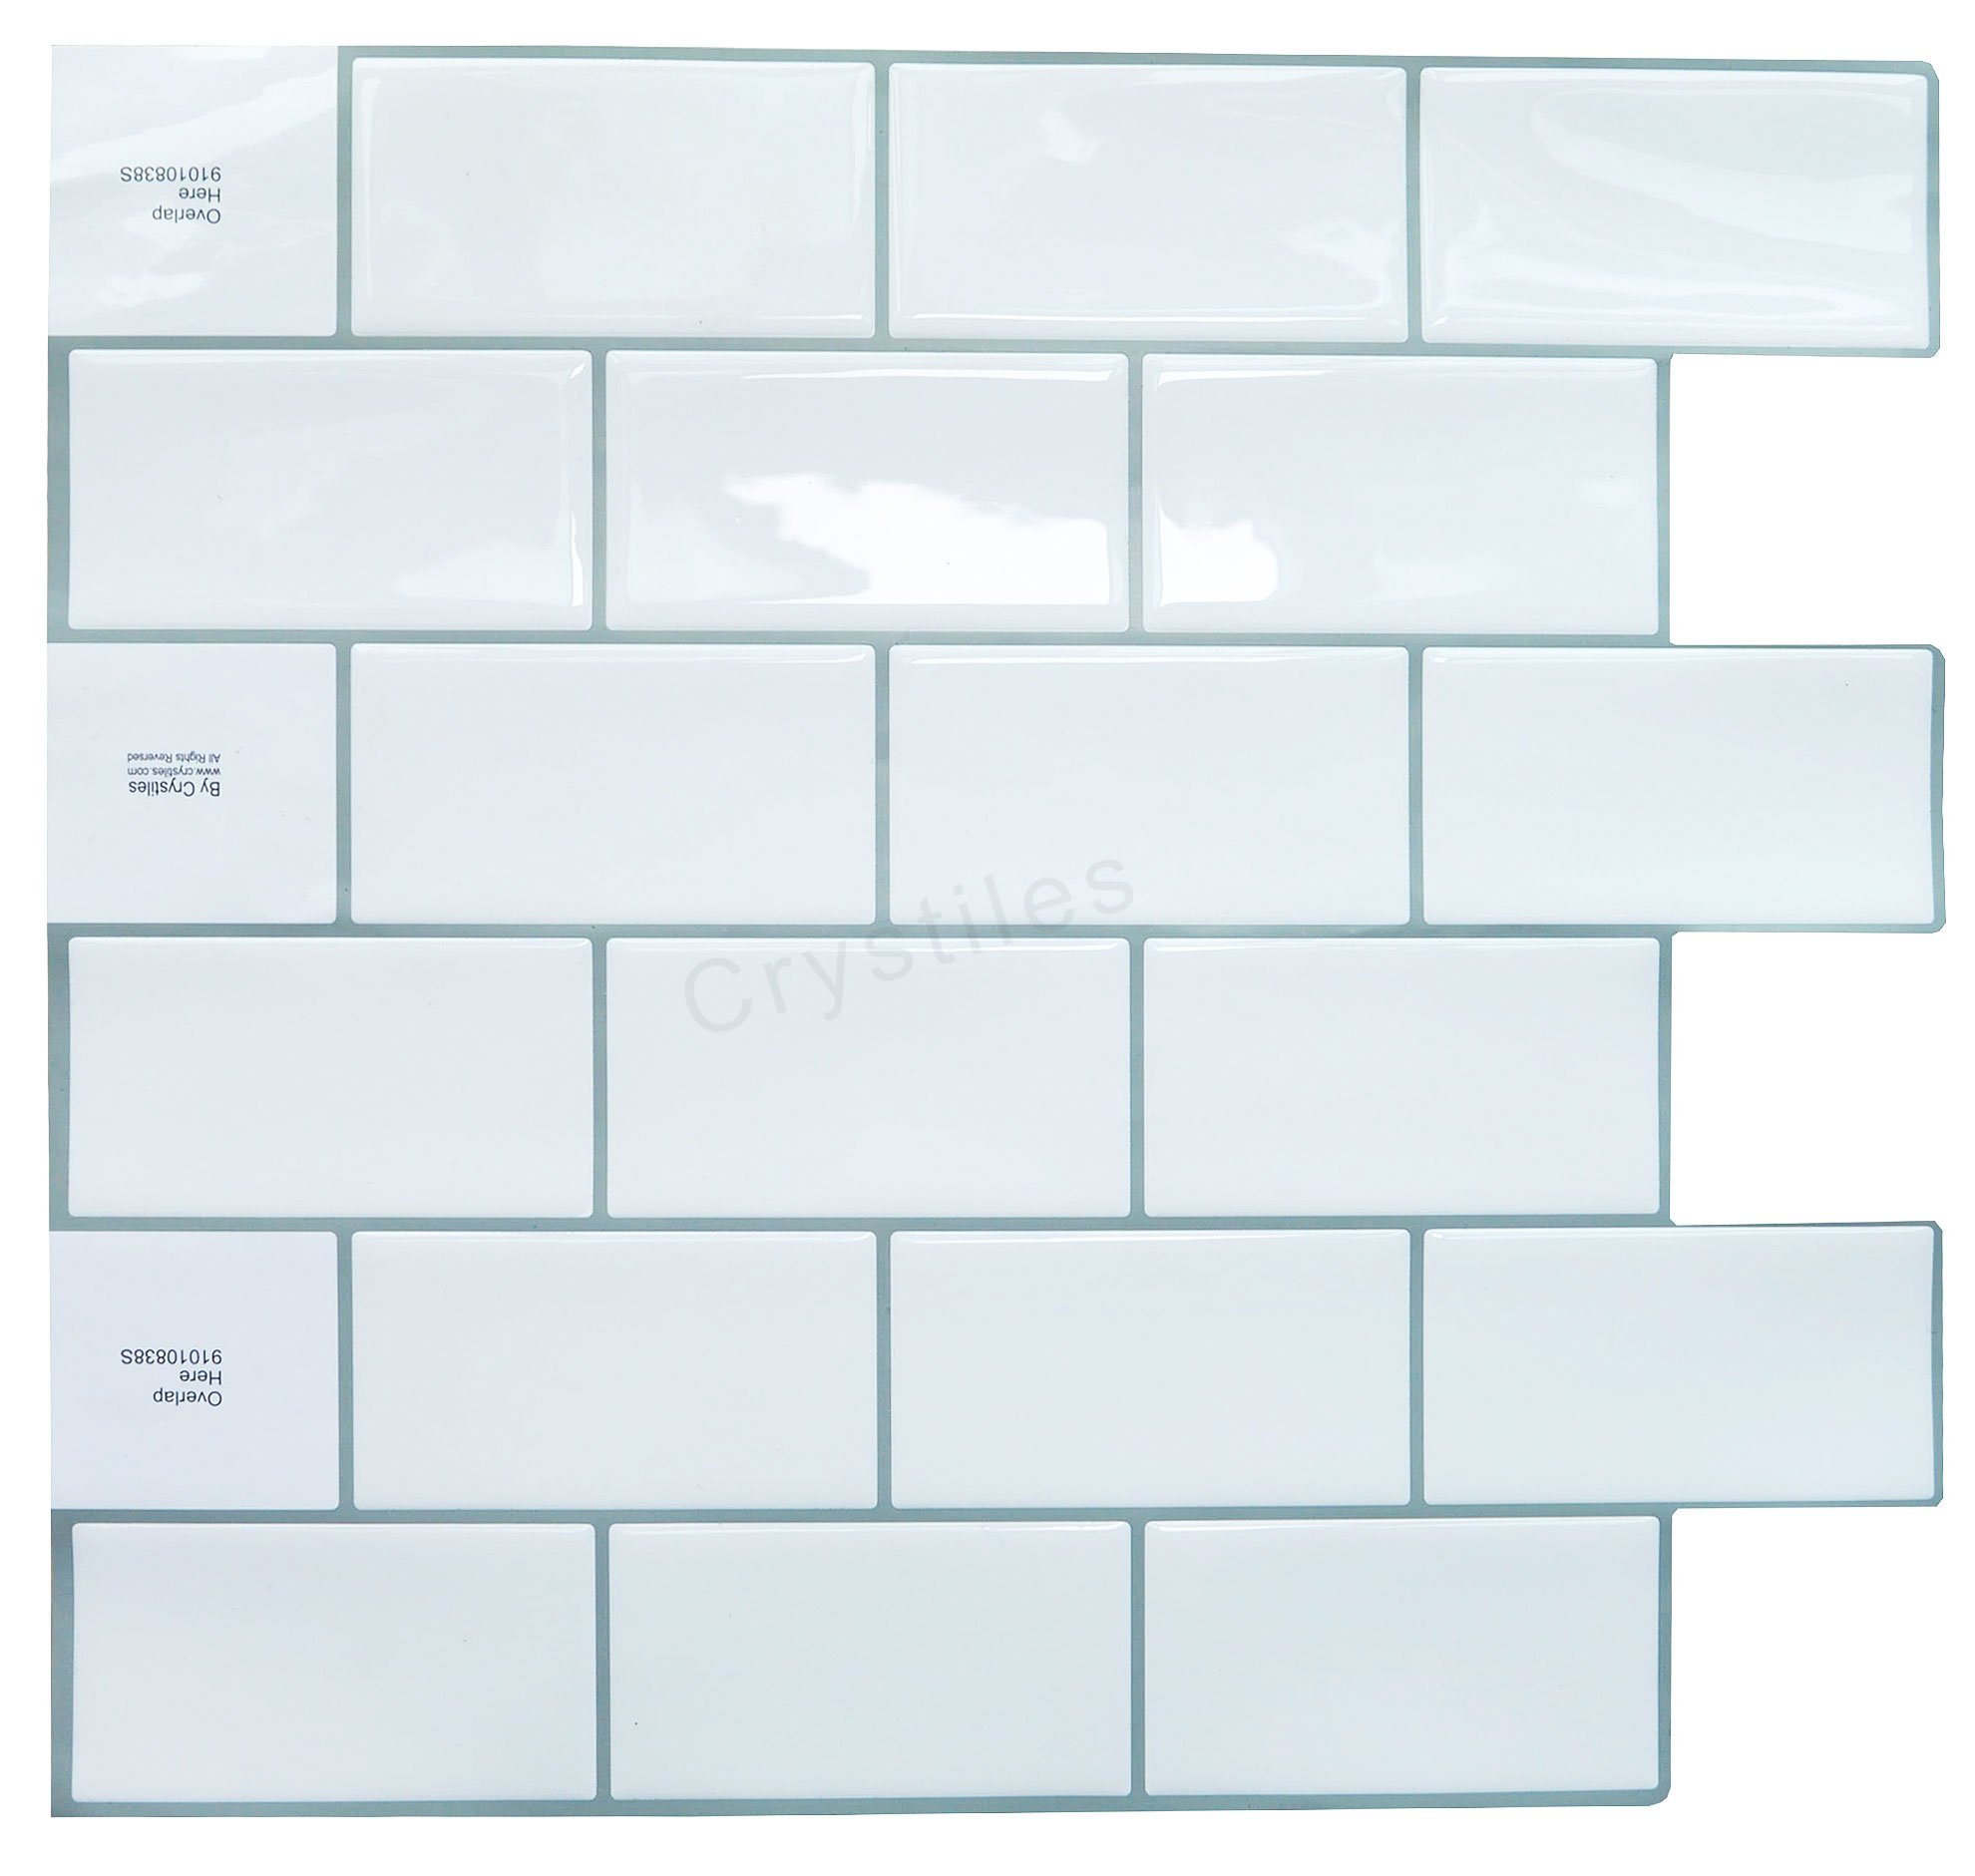 "Crystiles Peel and Stick Self-Adhesive DIY Backsplash Stick-on Vinyl Wall Tiles for Kitchen and Bathroom Décor Projects, Subway White, Item# 91010838, 10"" X 10"" Each, 6 Sheets Pack"